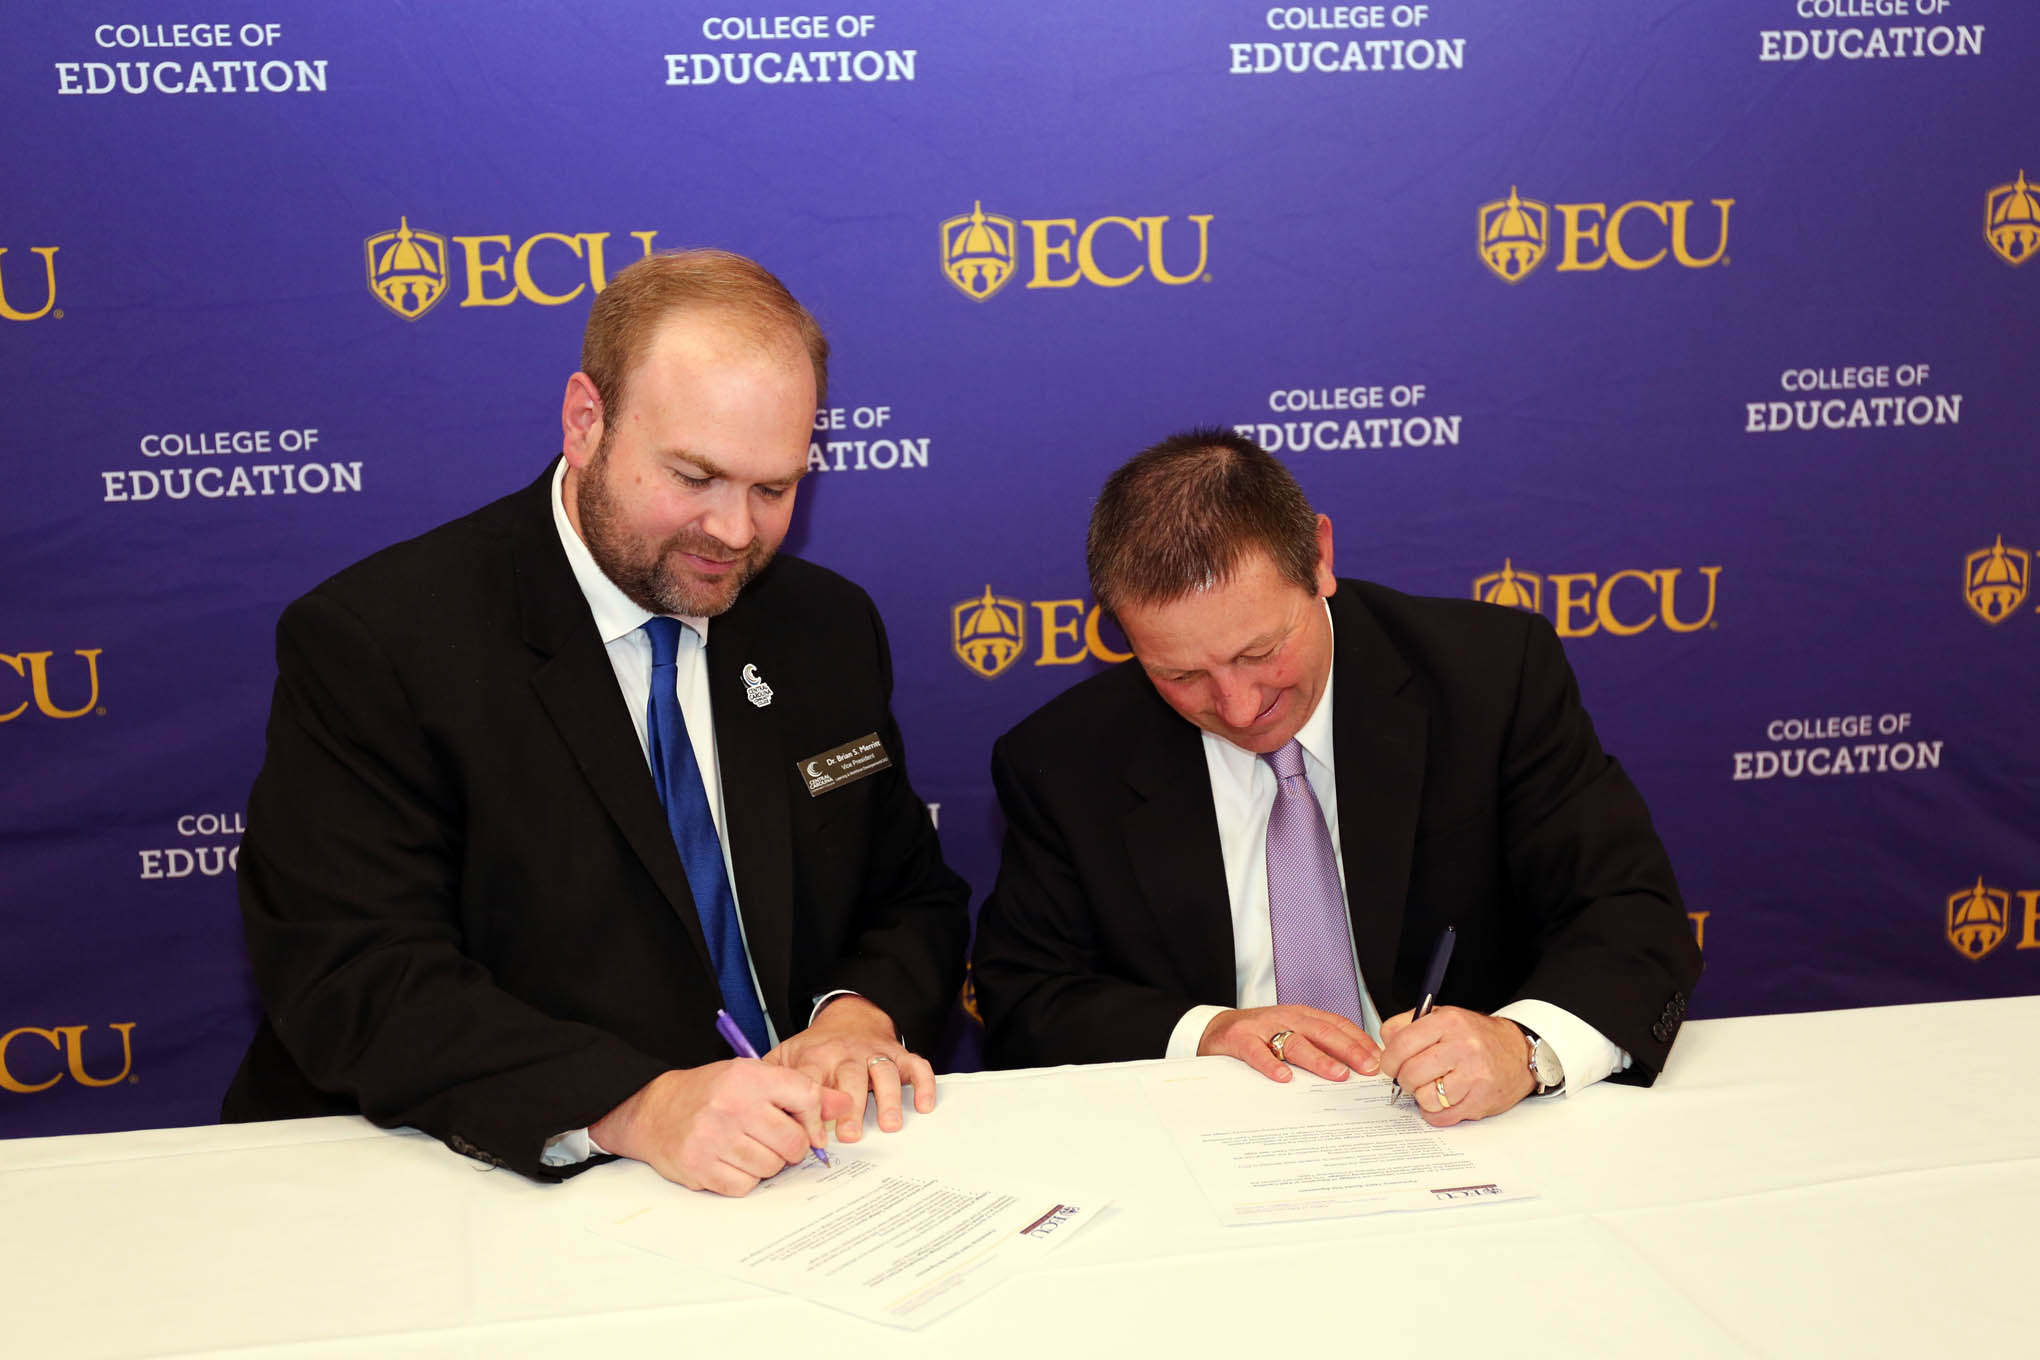 Click to enlarge,  Dr. Brian Merritt (left), Central Carolina Community College Vice President of Learning & Workforce Development/Chief Academic Officer, and Dr. Art Rouse, East Carolina University's Interim Dean of the College of Education, sign the Partnership Teacher program agreement.